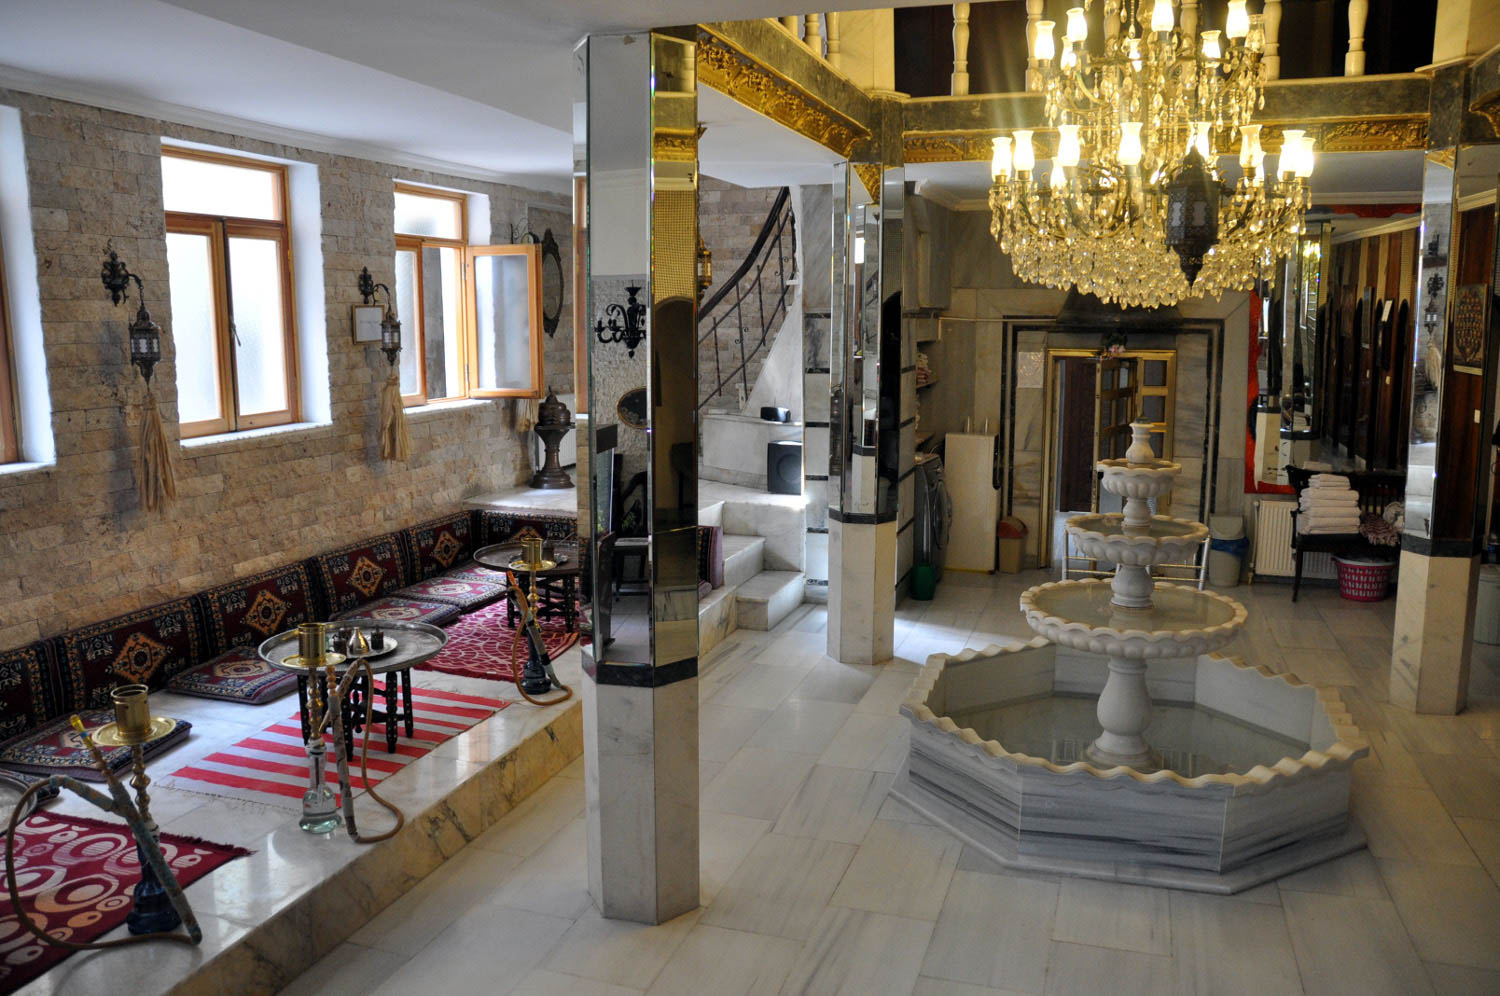 Turkish Bath hammam Things to do in Istanbul